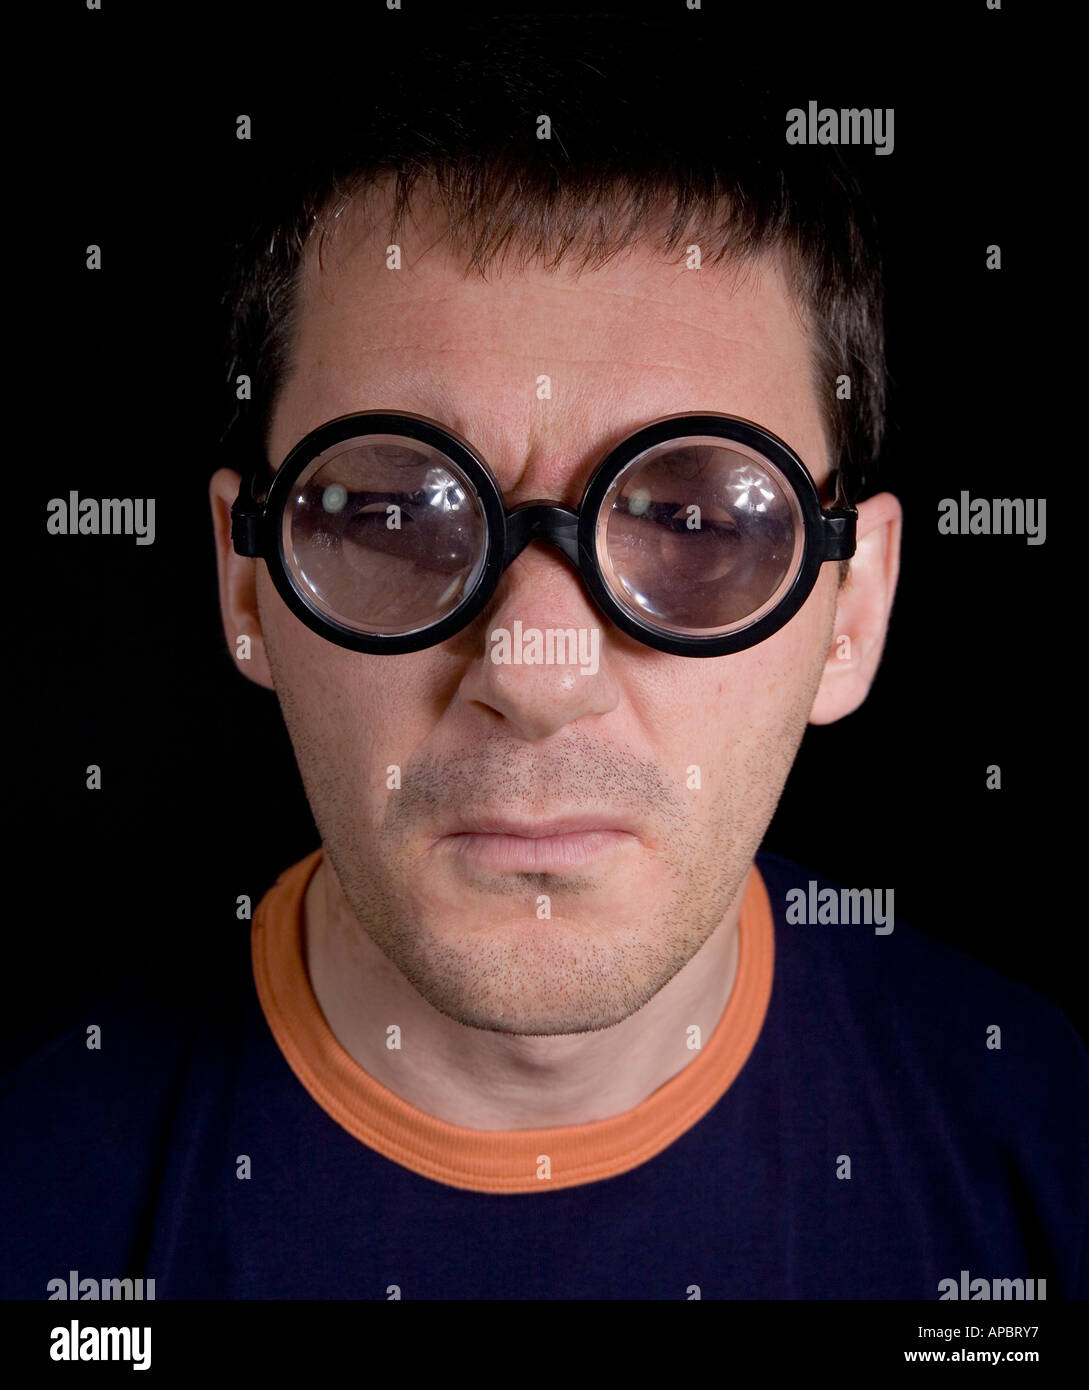 person thick Midget glasses with